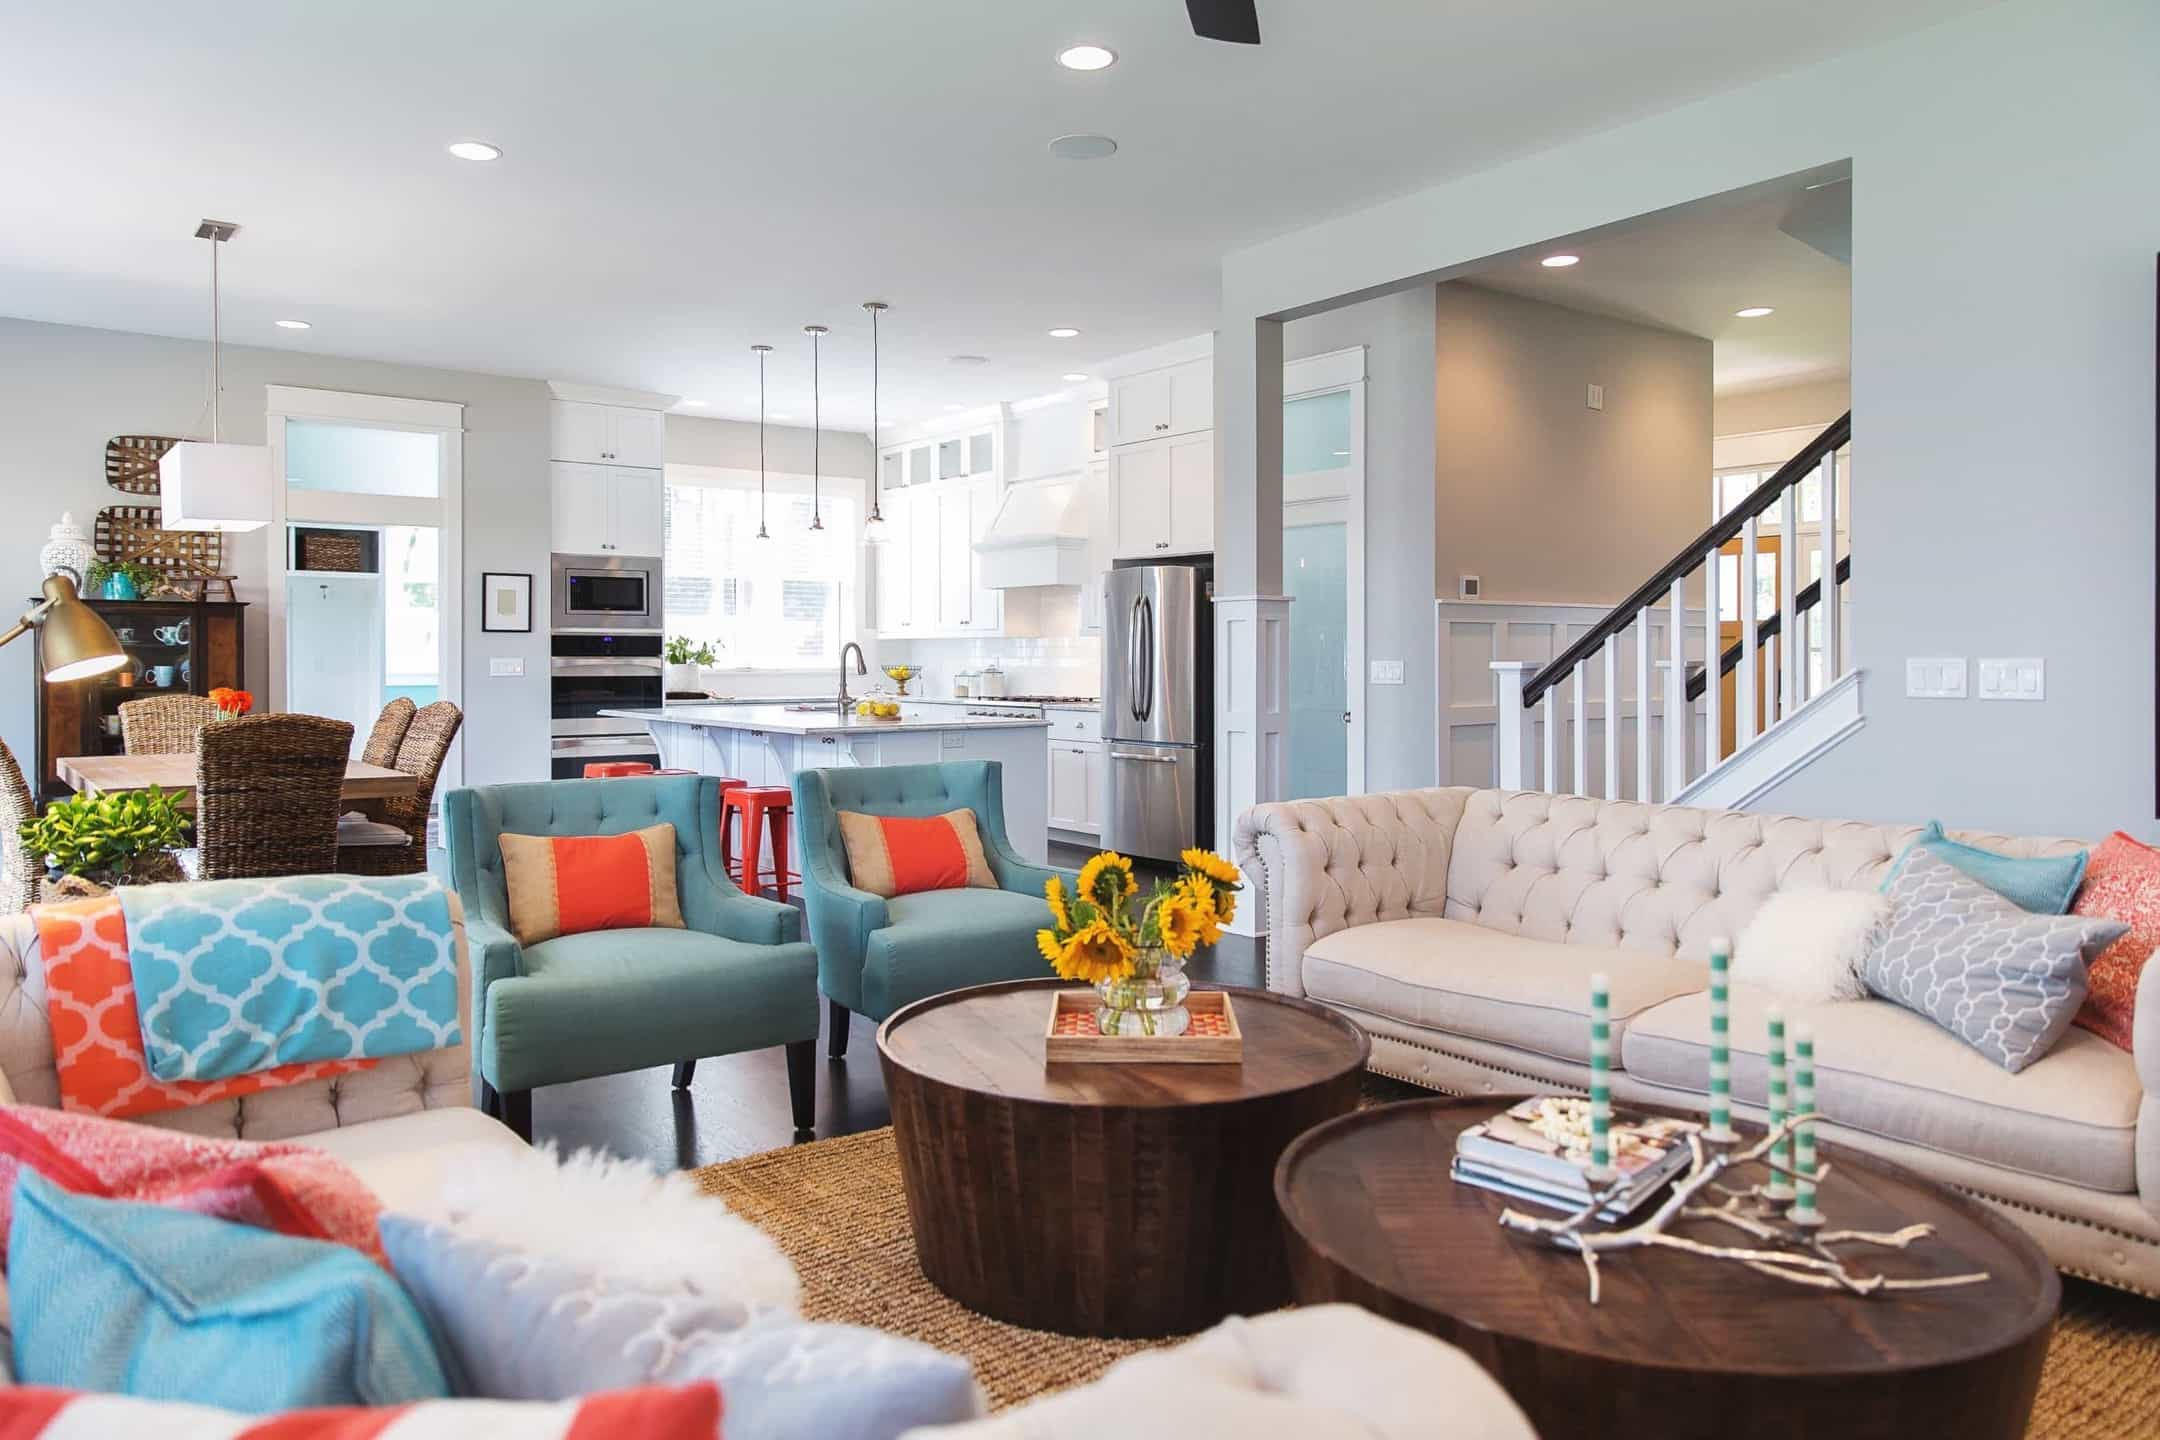 Featured Image of Living Room Features Beige Sofa And Turquoise Armchairs